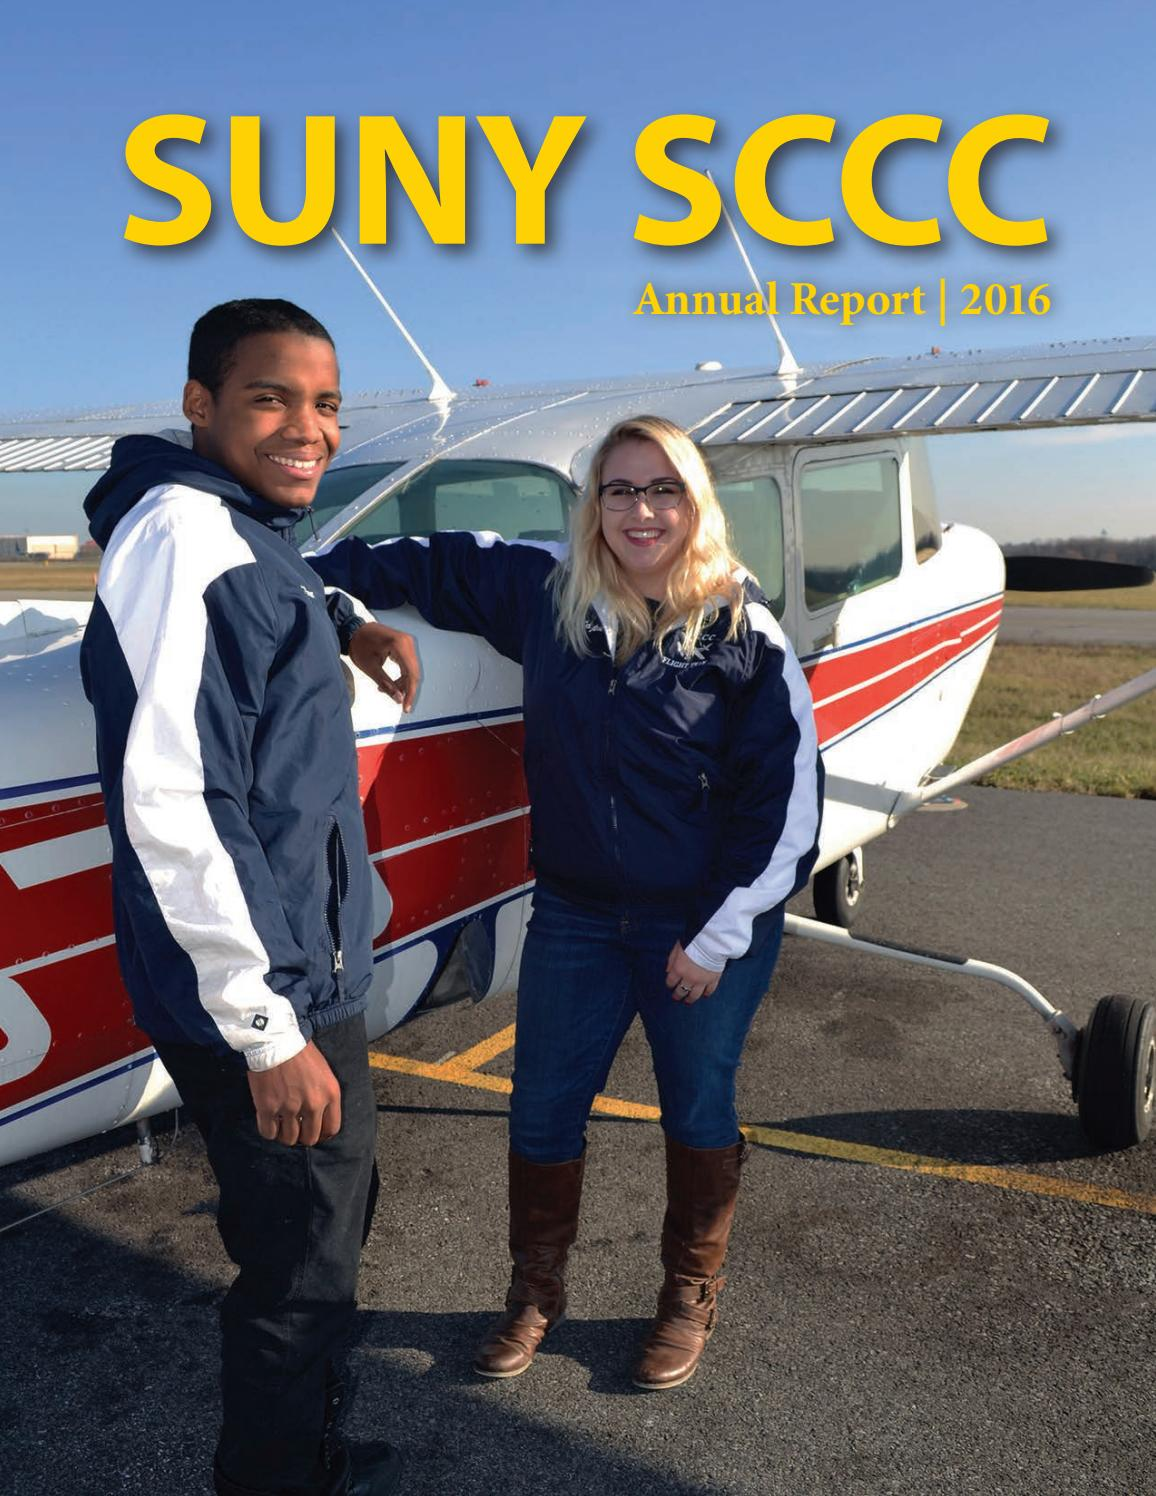 2016 Annual Report By Suny Schenectady County Community College Issuu